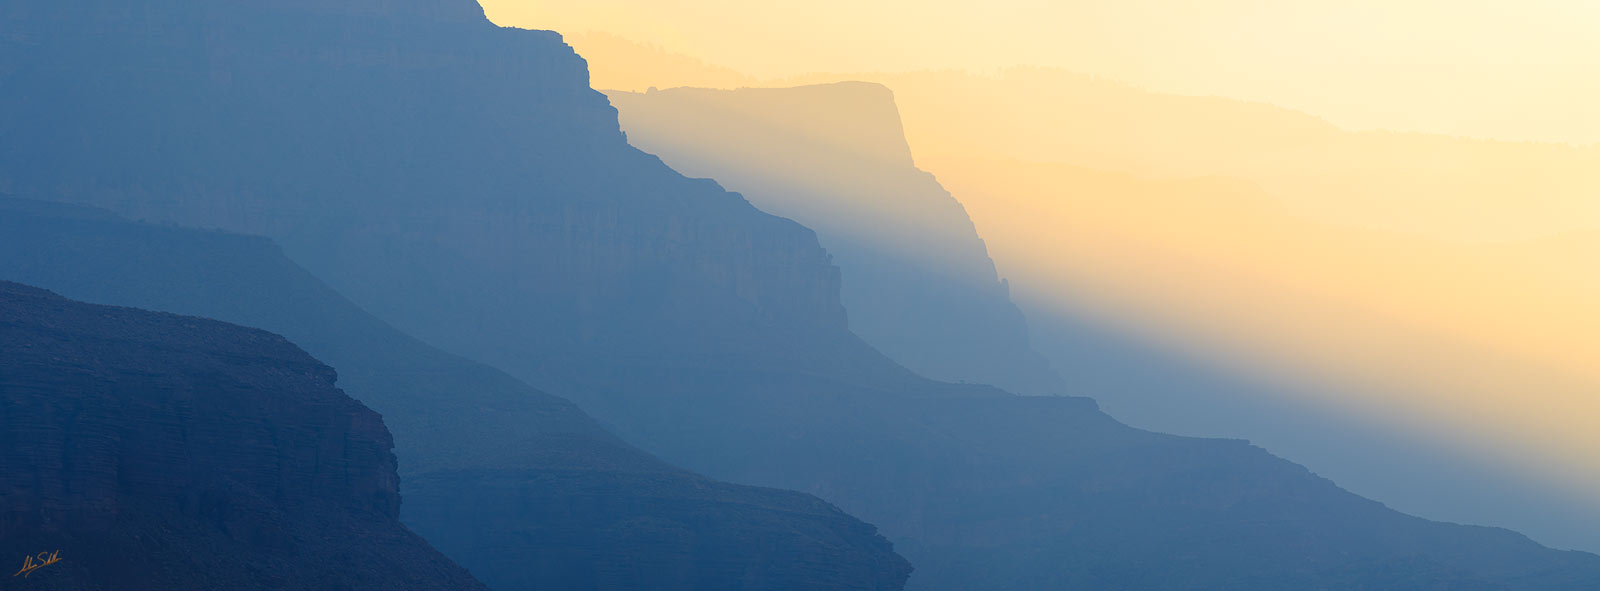 Early morning light filters through smoke from a wildfire burning on the Powell Plateau. From Owl Eyes Camp on the Colorado River...